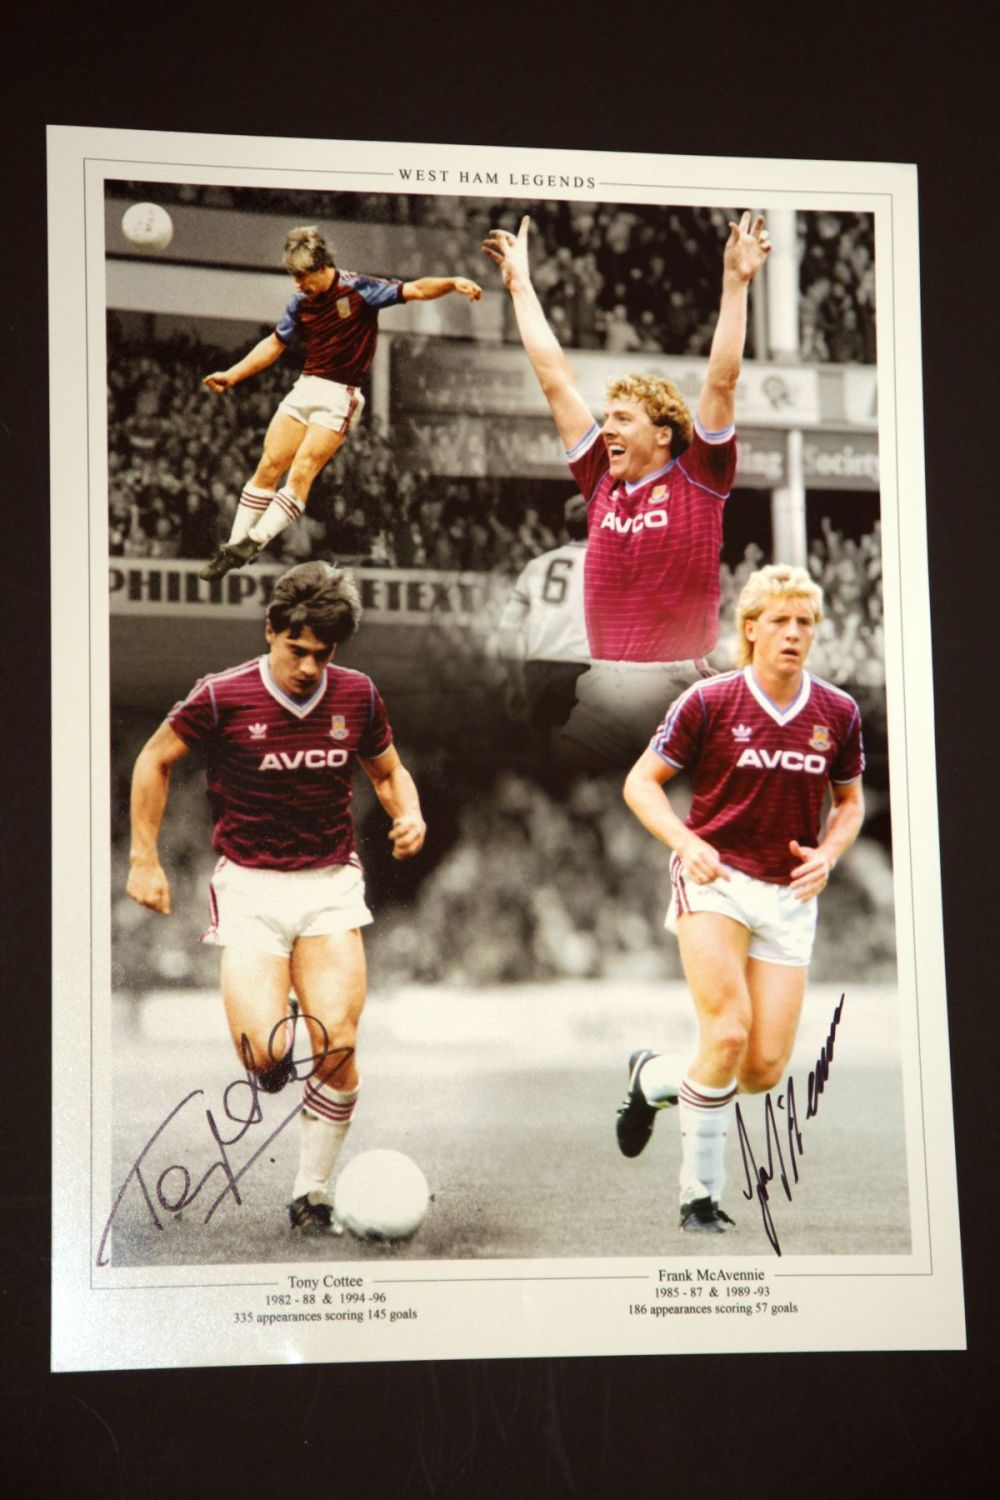 Tony Cottee And Frank Mcavennie Hand Signed West Ham United Football Photog